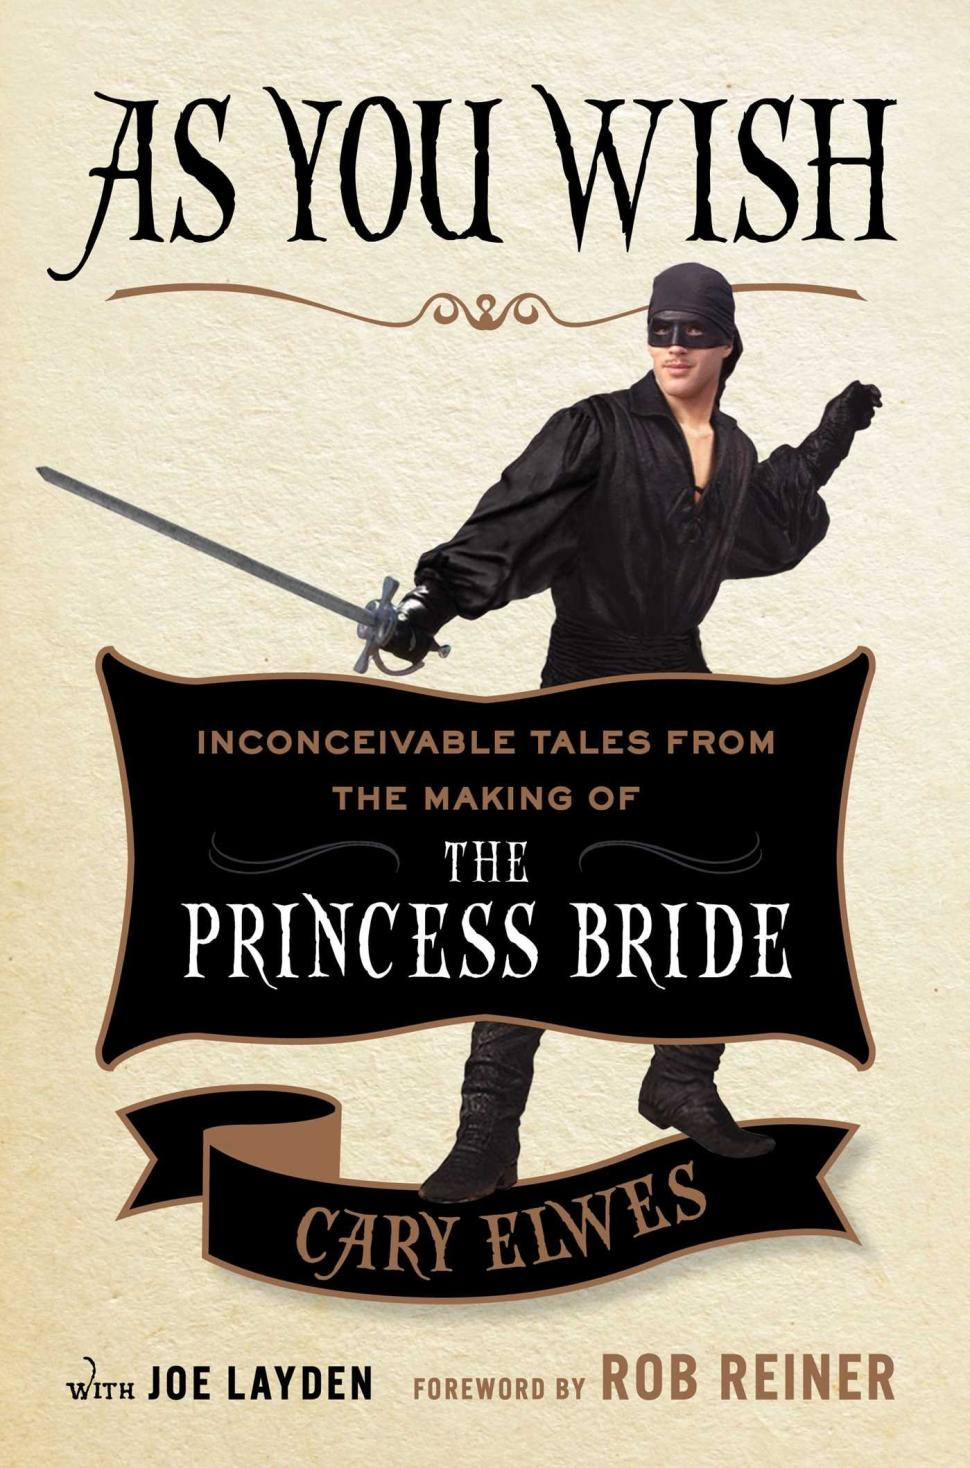 adroit s best books of the adroit journal as you wish inconceivable tales from the making of the princess bride by cary elwes